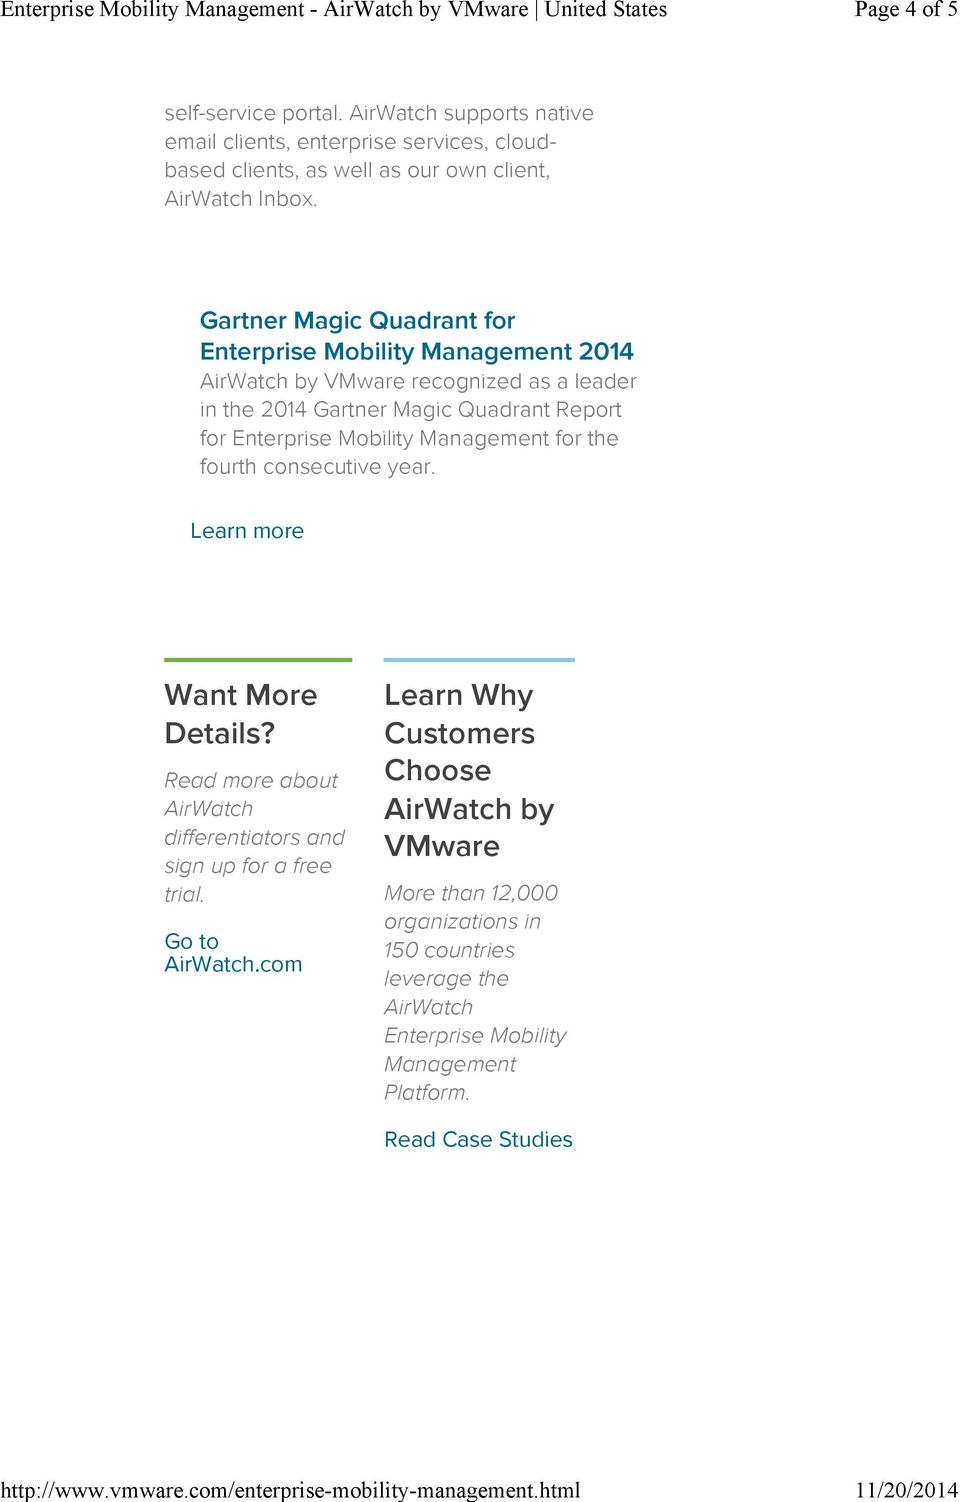 Gartner Magic Quadrant for Enterprise Mobility Management 2014 by recognized as a leader in the 2014 Gartner Magic Quadrant Report for Enterprise Mobility